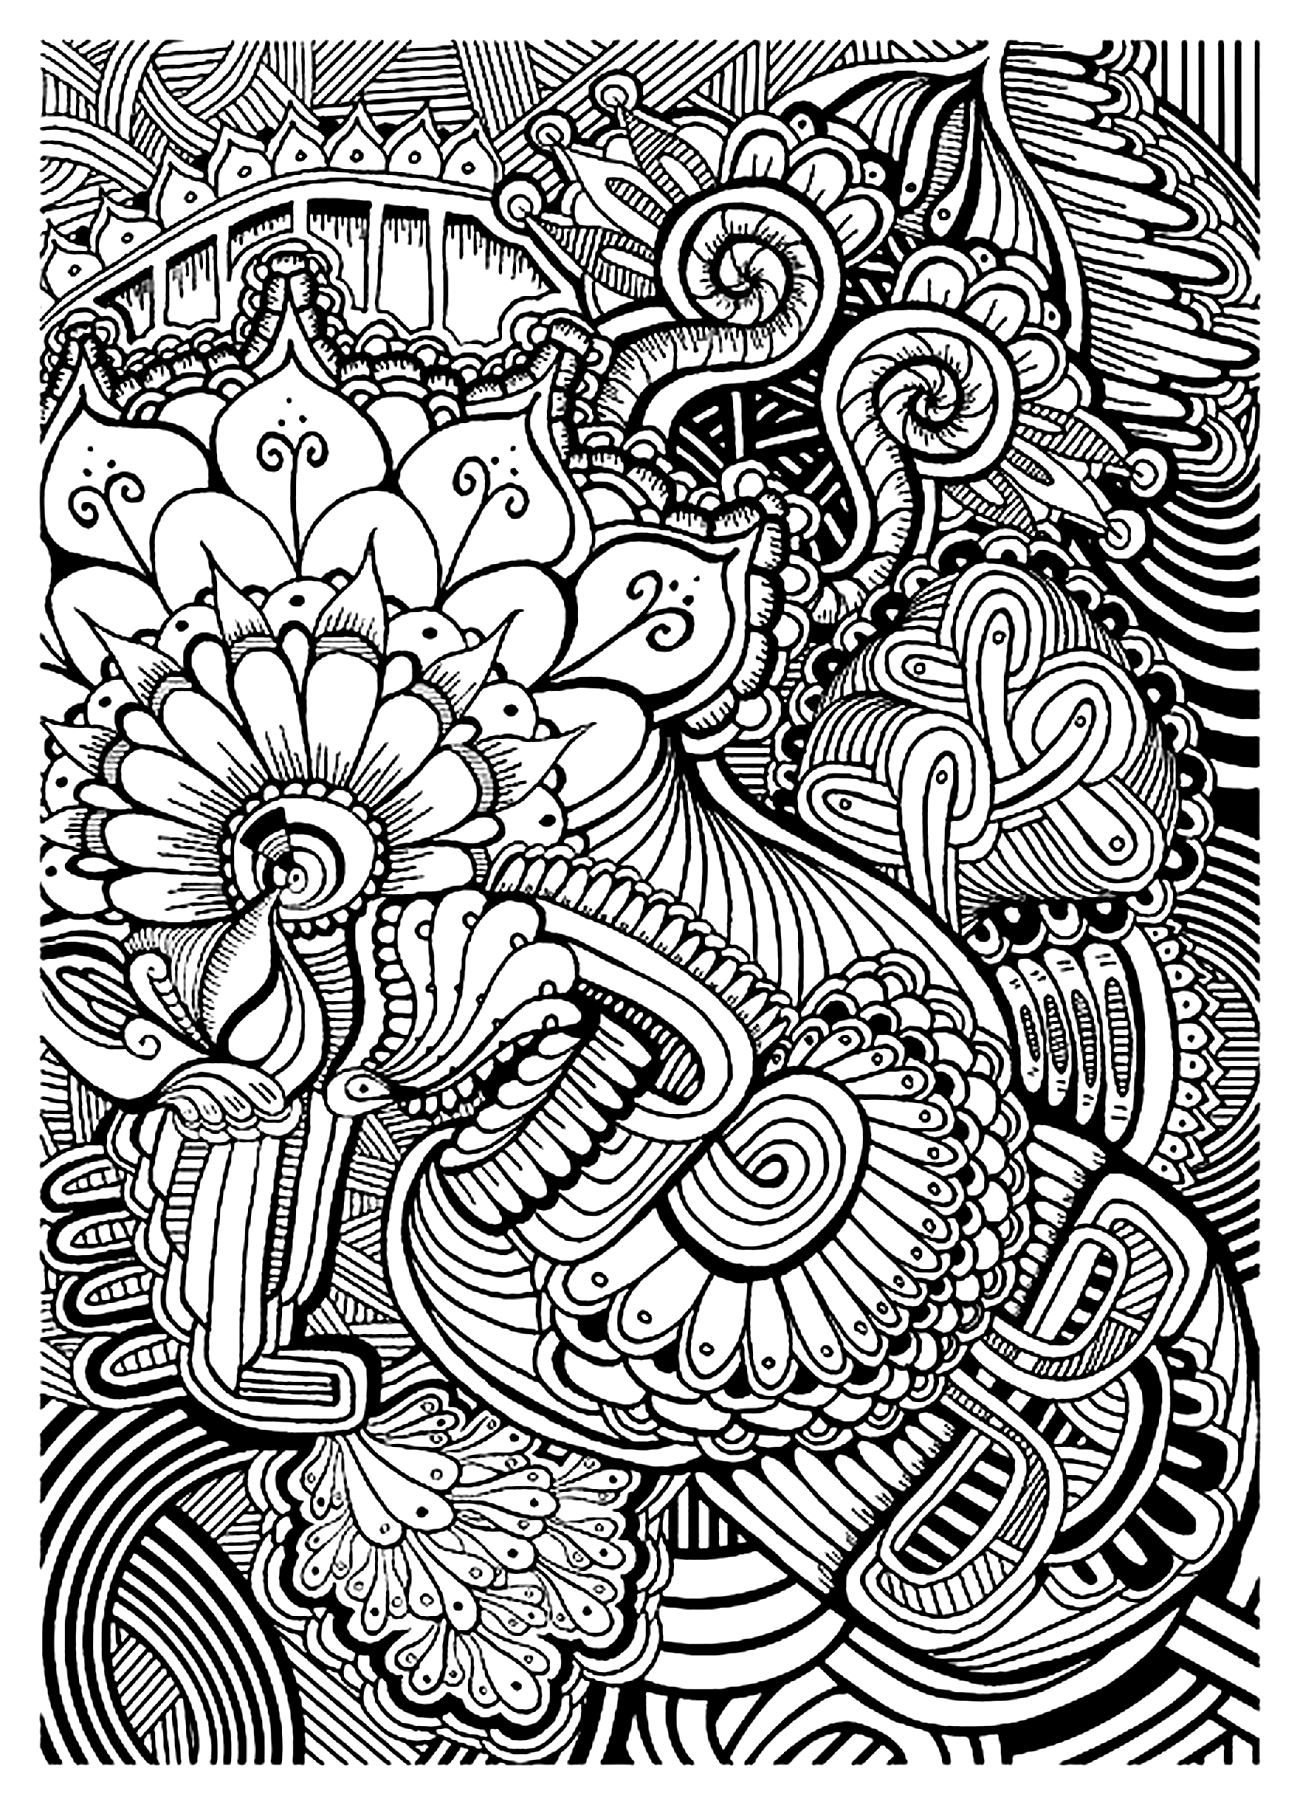 zen coloring pages Zen anti stress relax to print   Anti stress Adult Coloring Pages  zen coloring pages